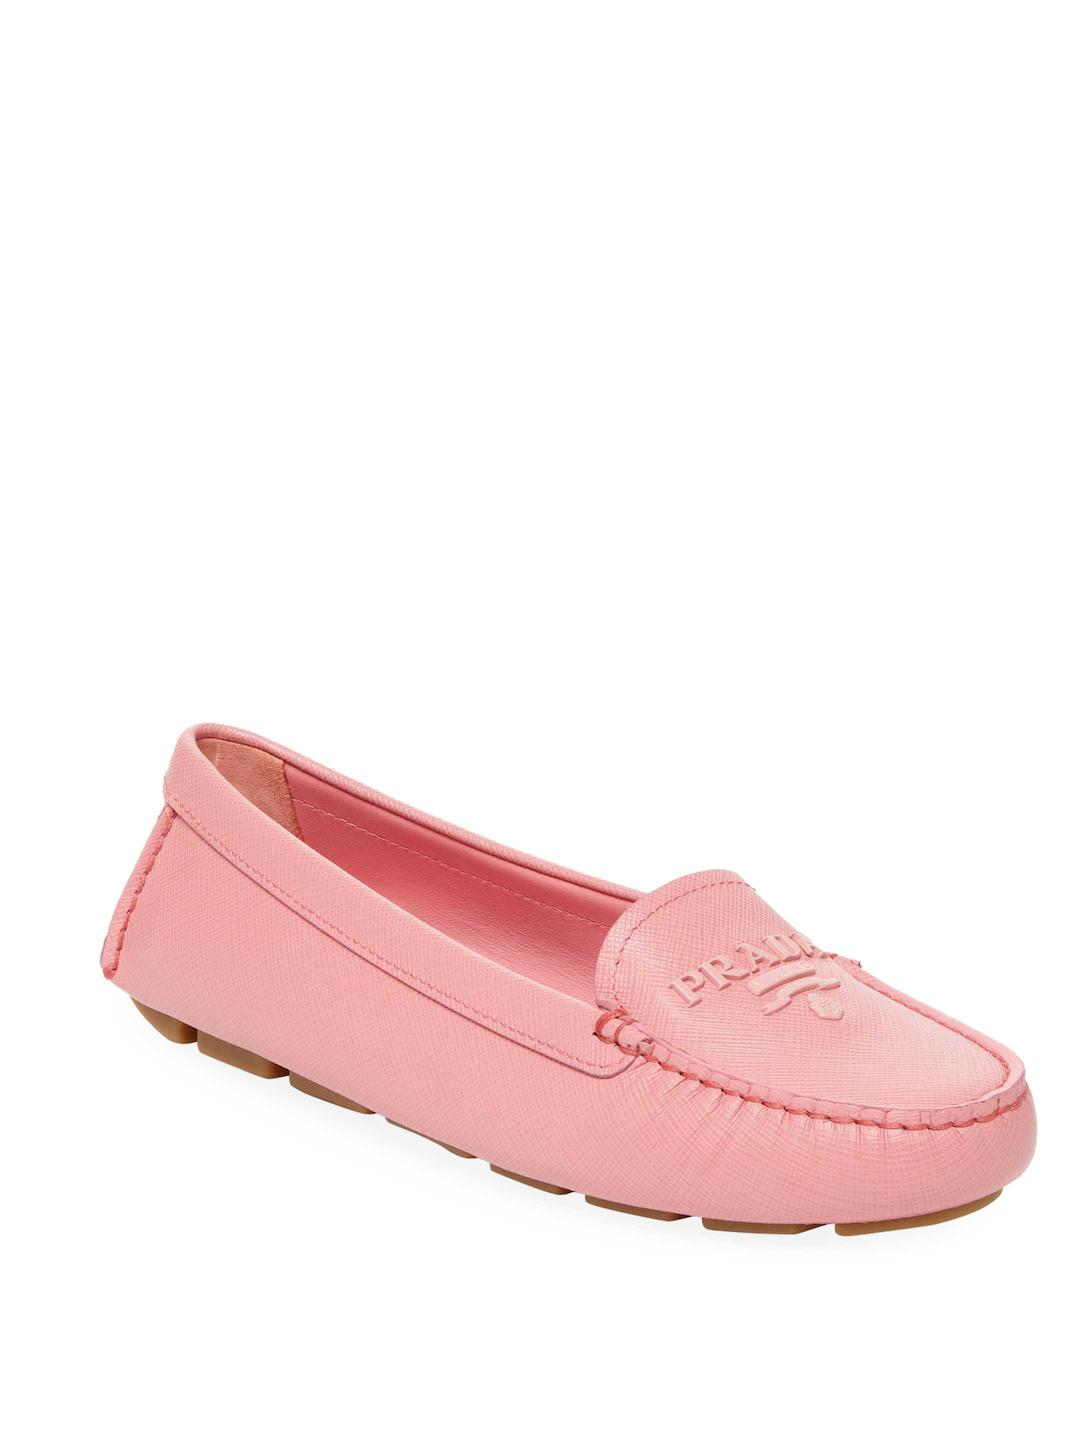 Loafers & Slippers - Drive Logo Loafers Leather Loto - rose - Loafers & Slippers for ladies Prada xOeGKSA